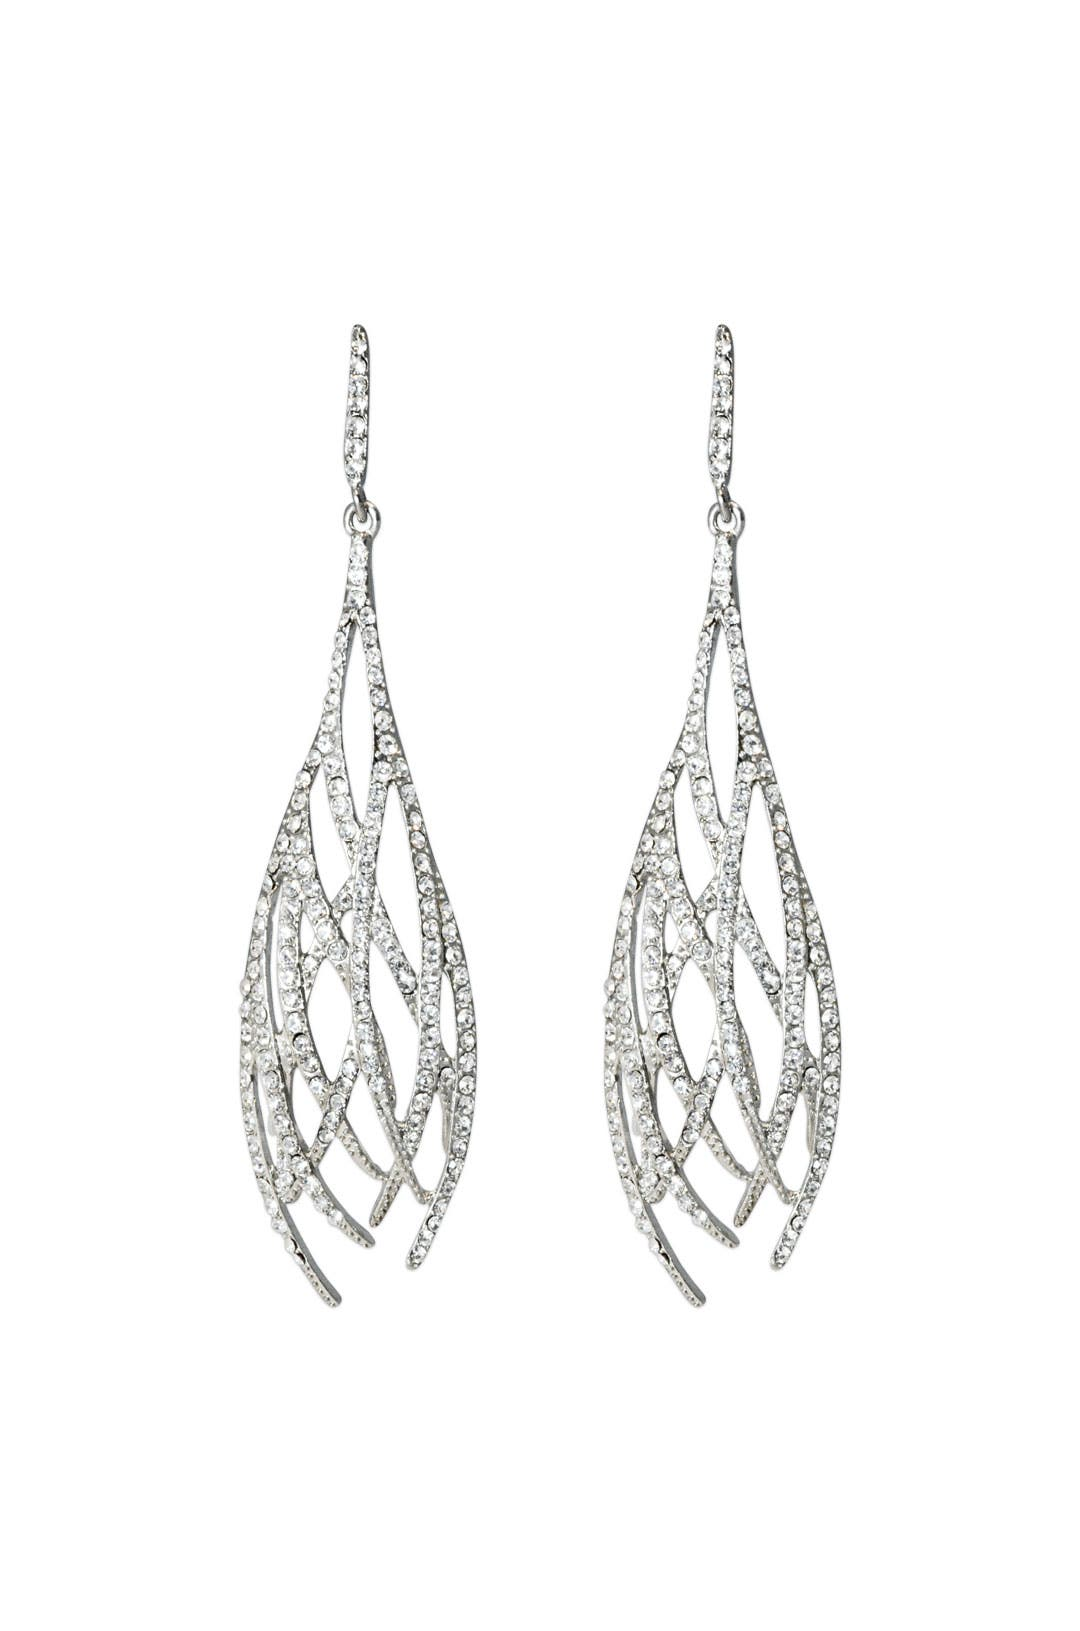 Silver Pave Weave Earrings by Kenneth Jay Lane